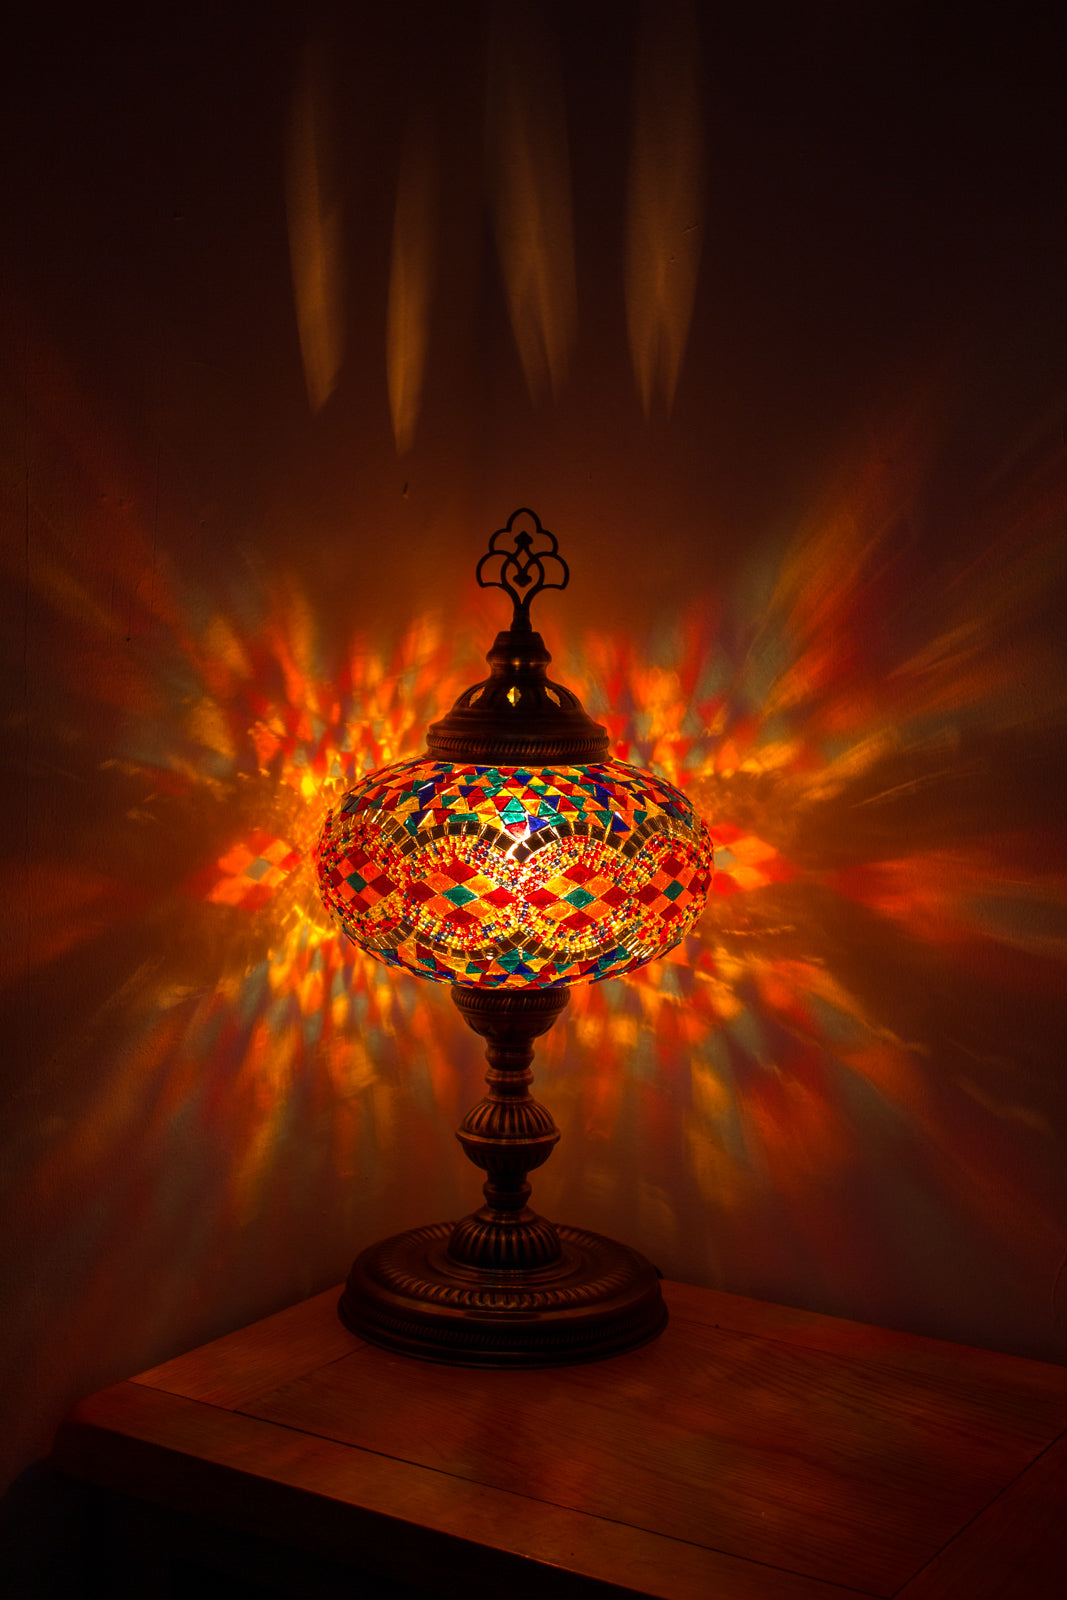 Hand Made Turkish Mosaic Table Lamp Size 5 in Flame Rug Design